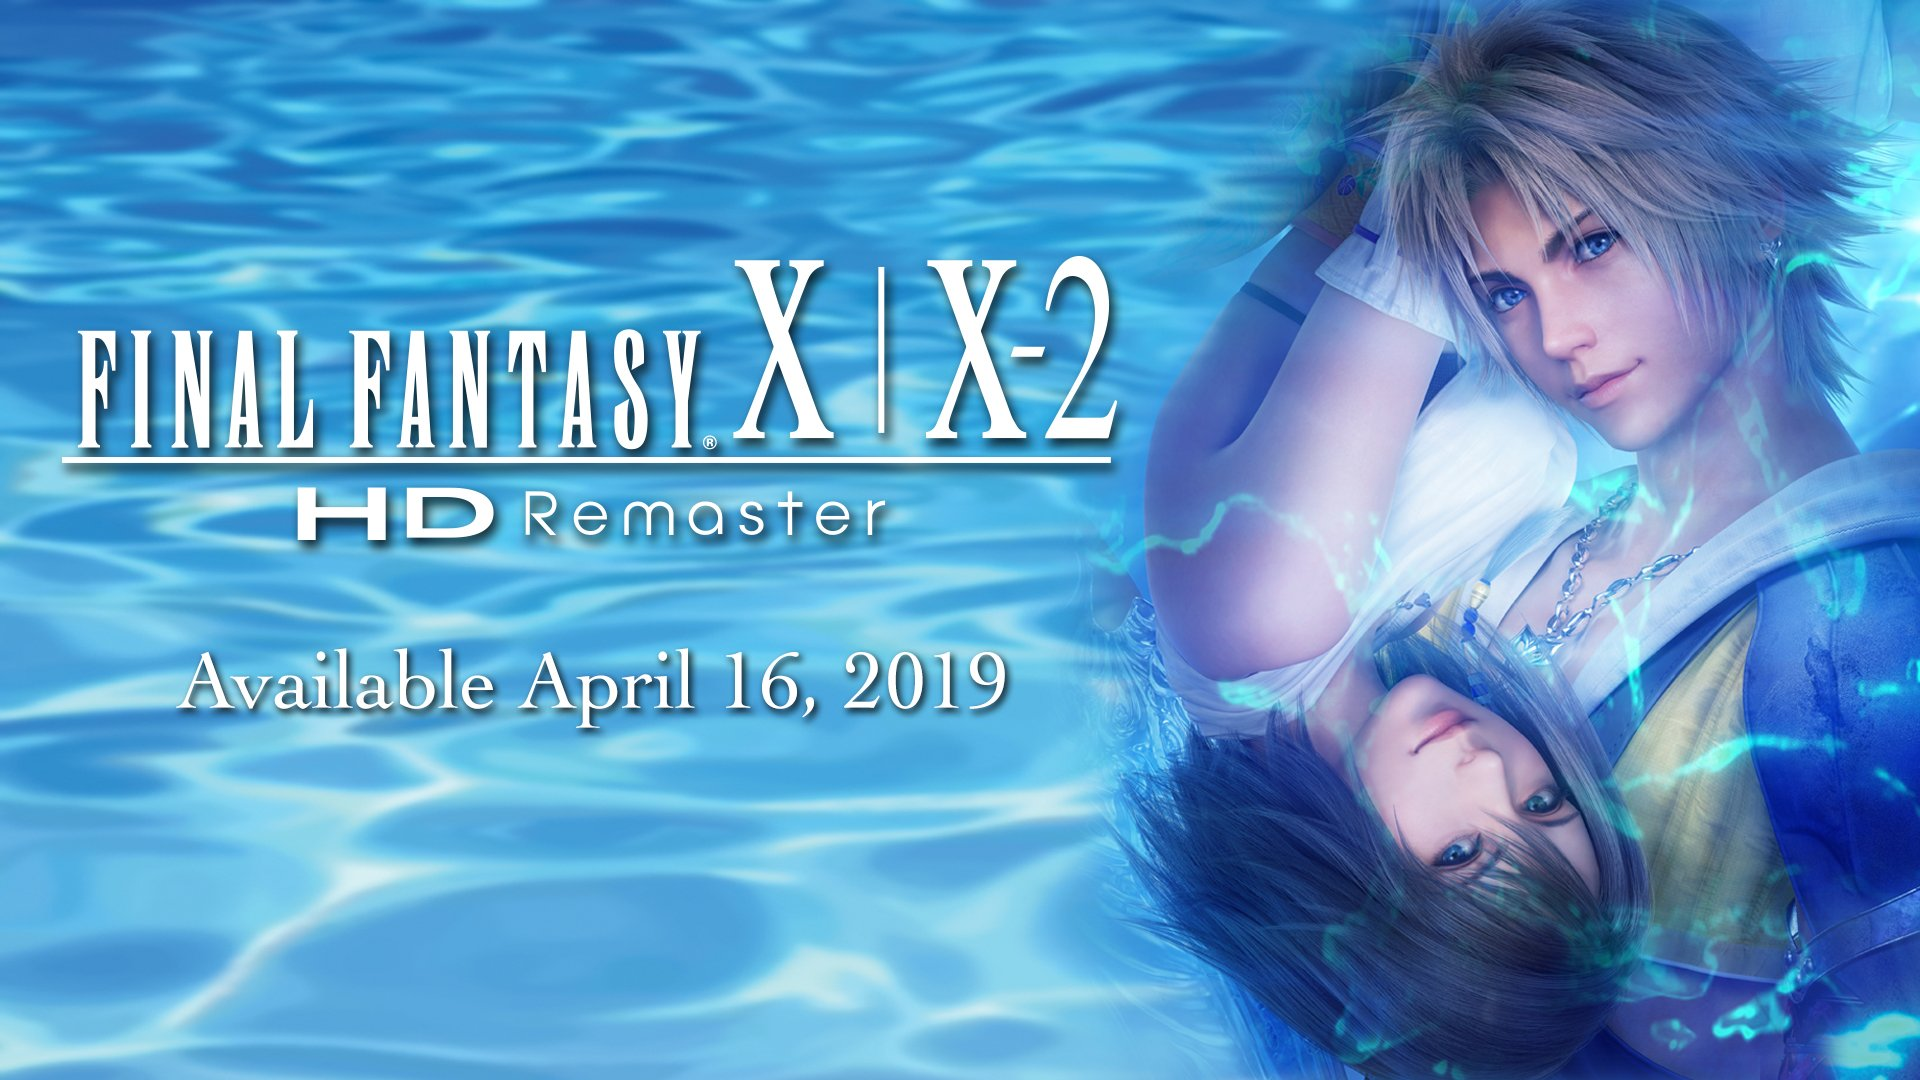 Your story begins…when #FinalFantasy X | X-2 HD Remaster for #NintendoSwitch arrives on 4/16! https://t.co/2AZyuvrUlJ